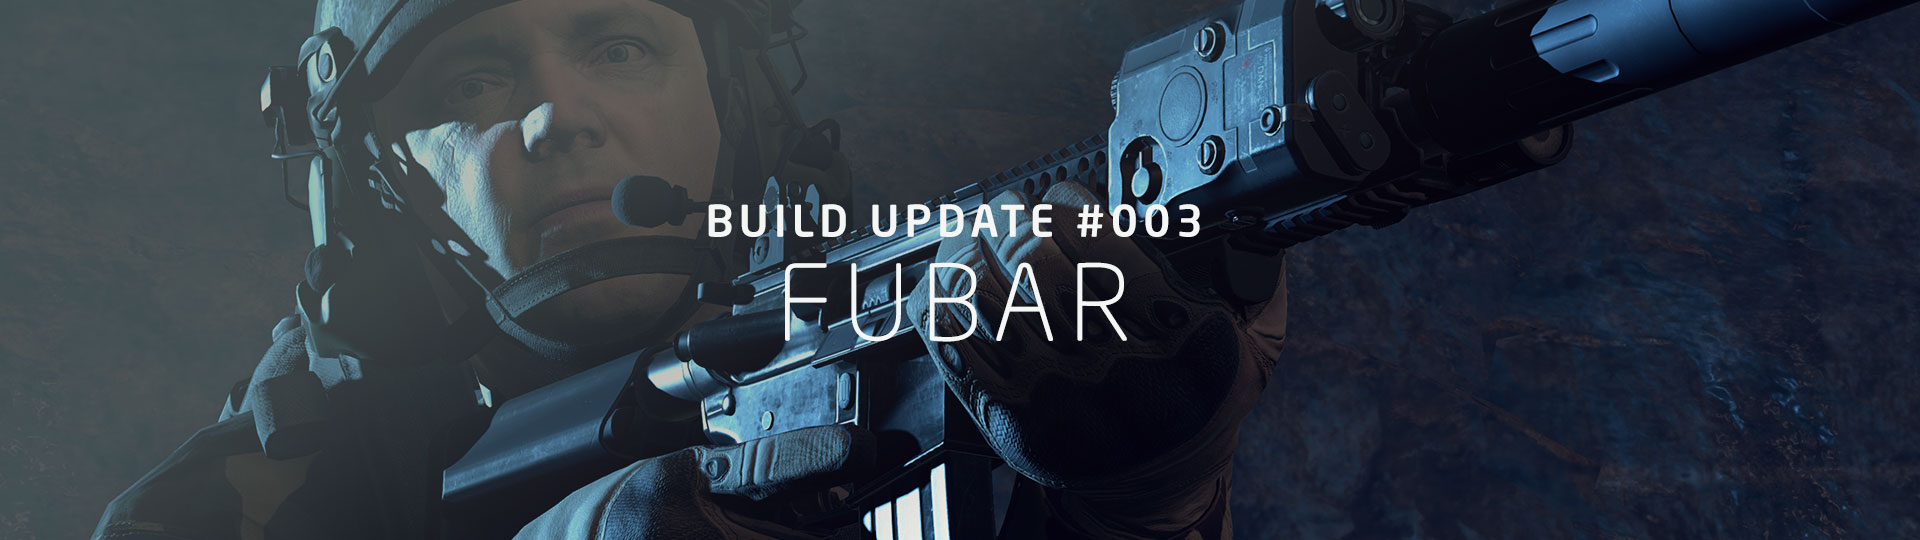 BUILD UPDATE #003: FUBAR – GROUND BRANCH